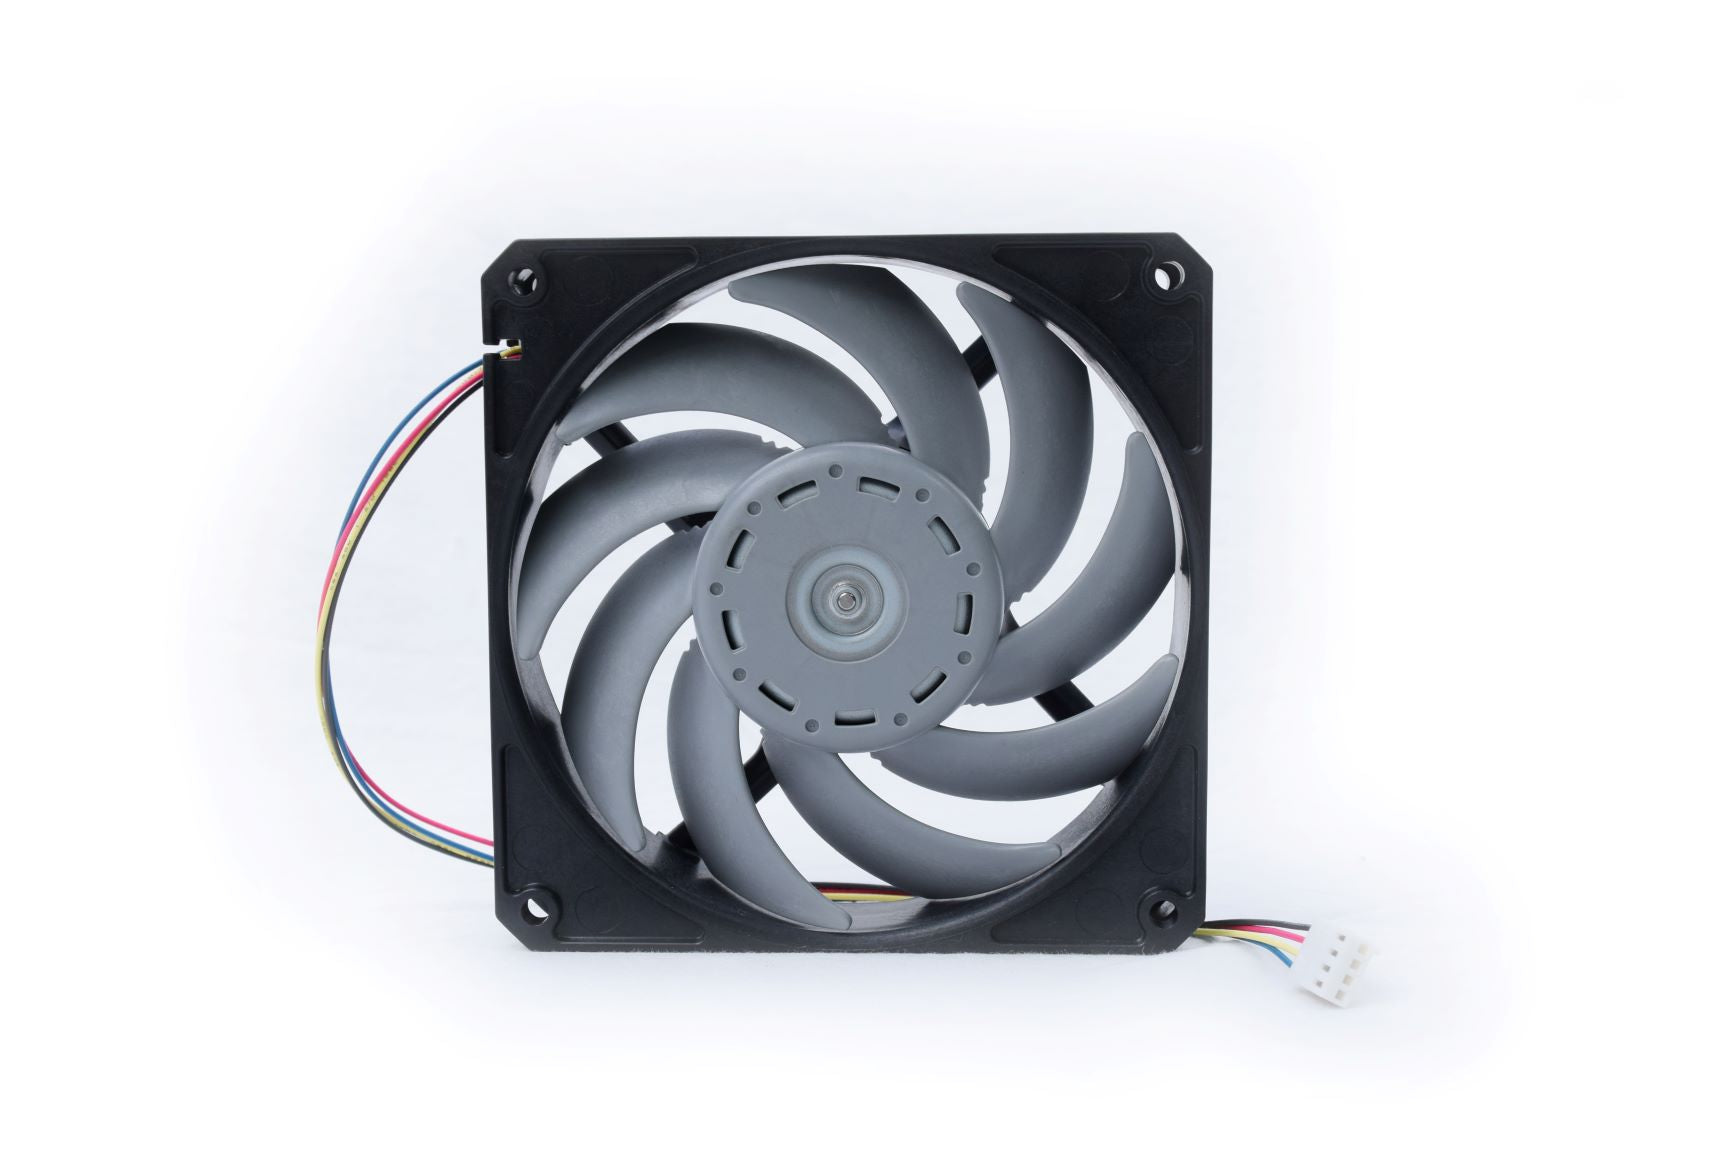 Gentletyphoon 120mm Silent Fan Series D1225c12b 1450 1850 And Wiring Diagram For Connector 120x120x25mm Case